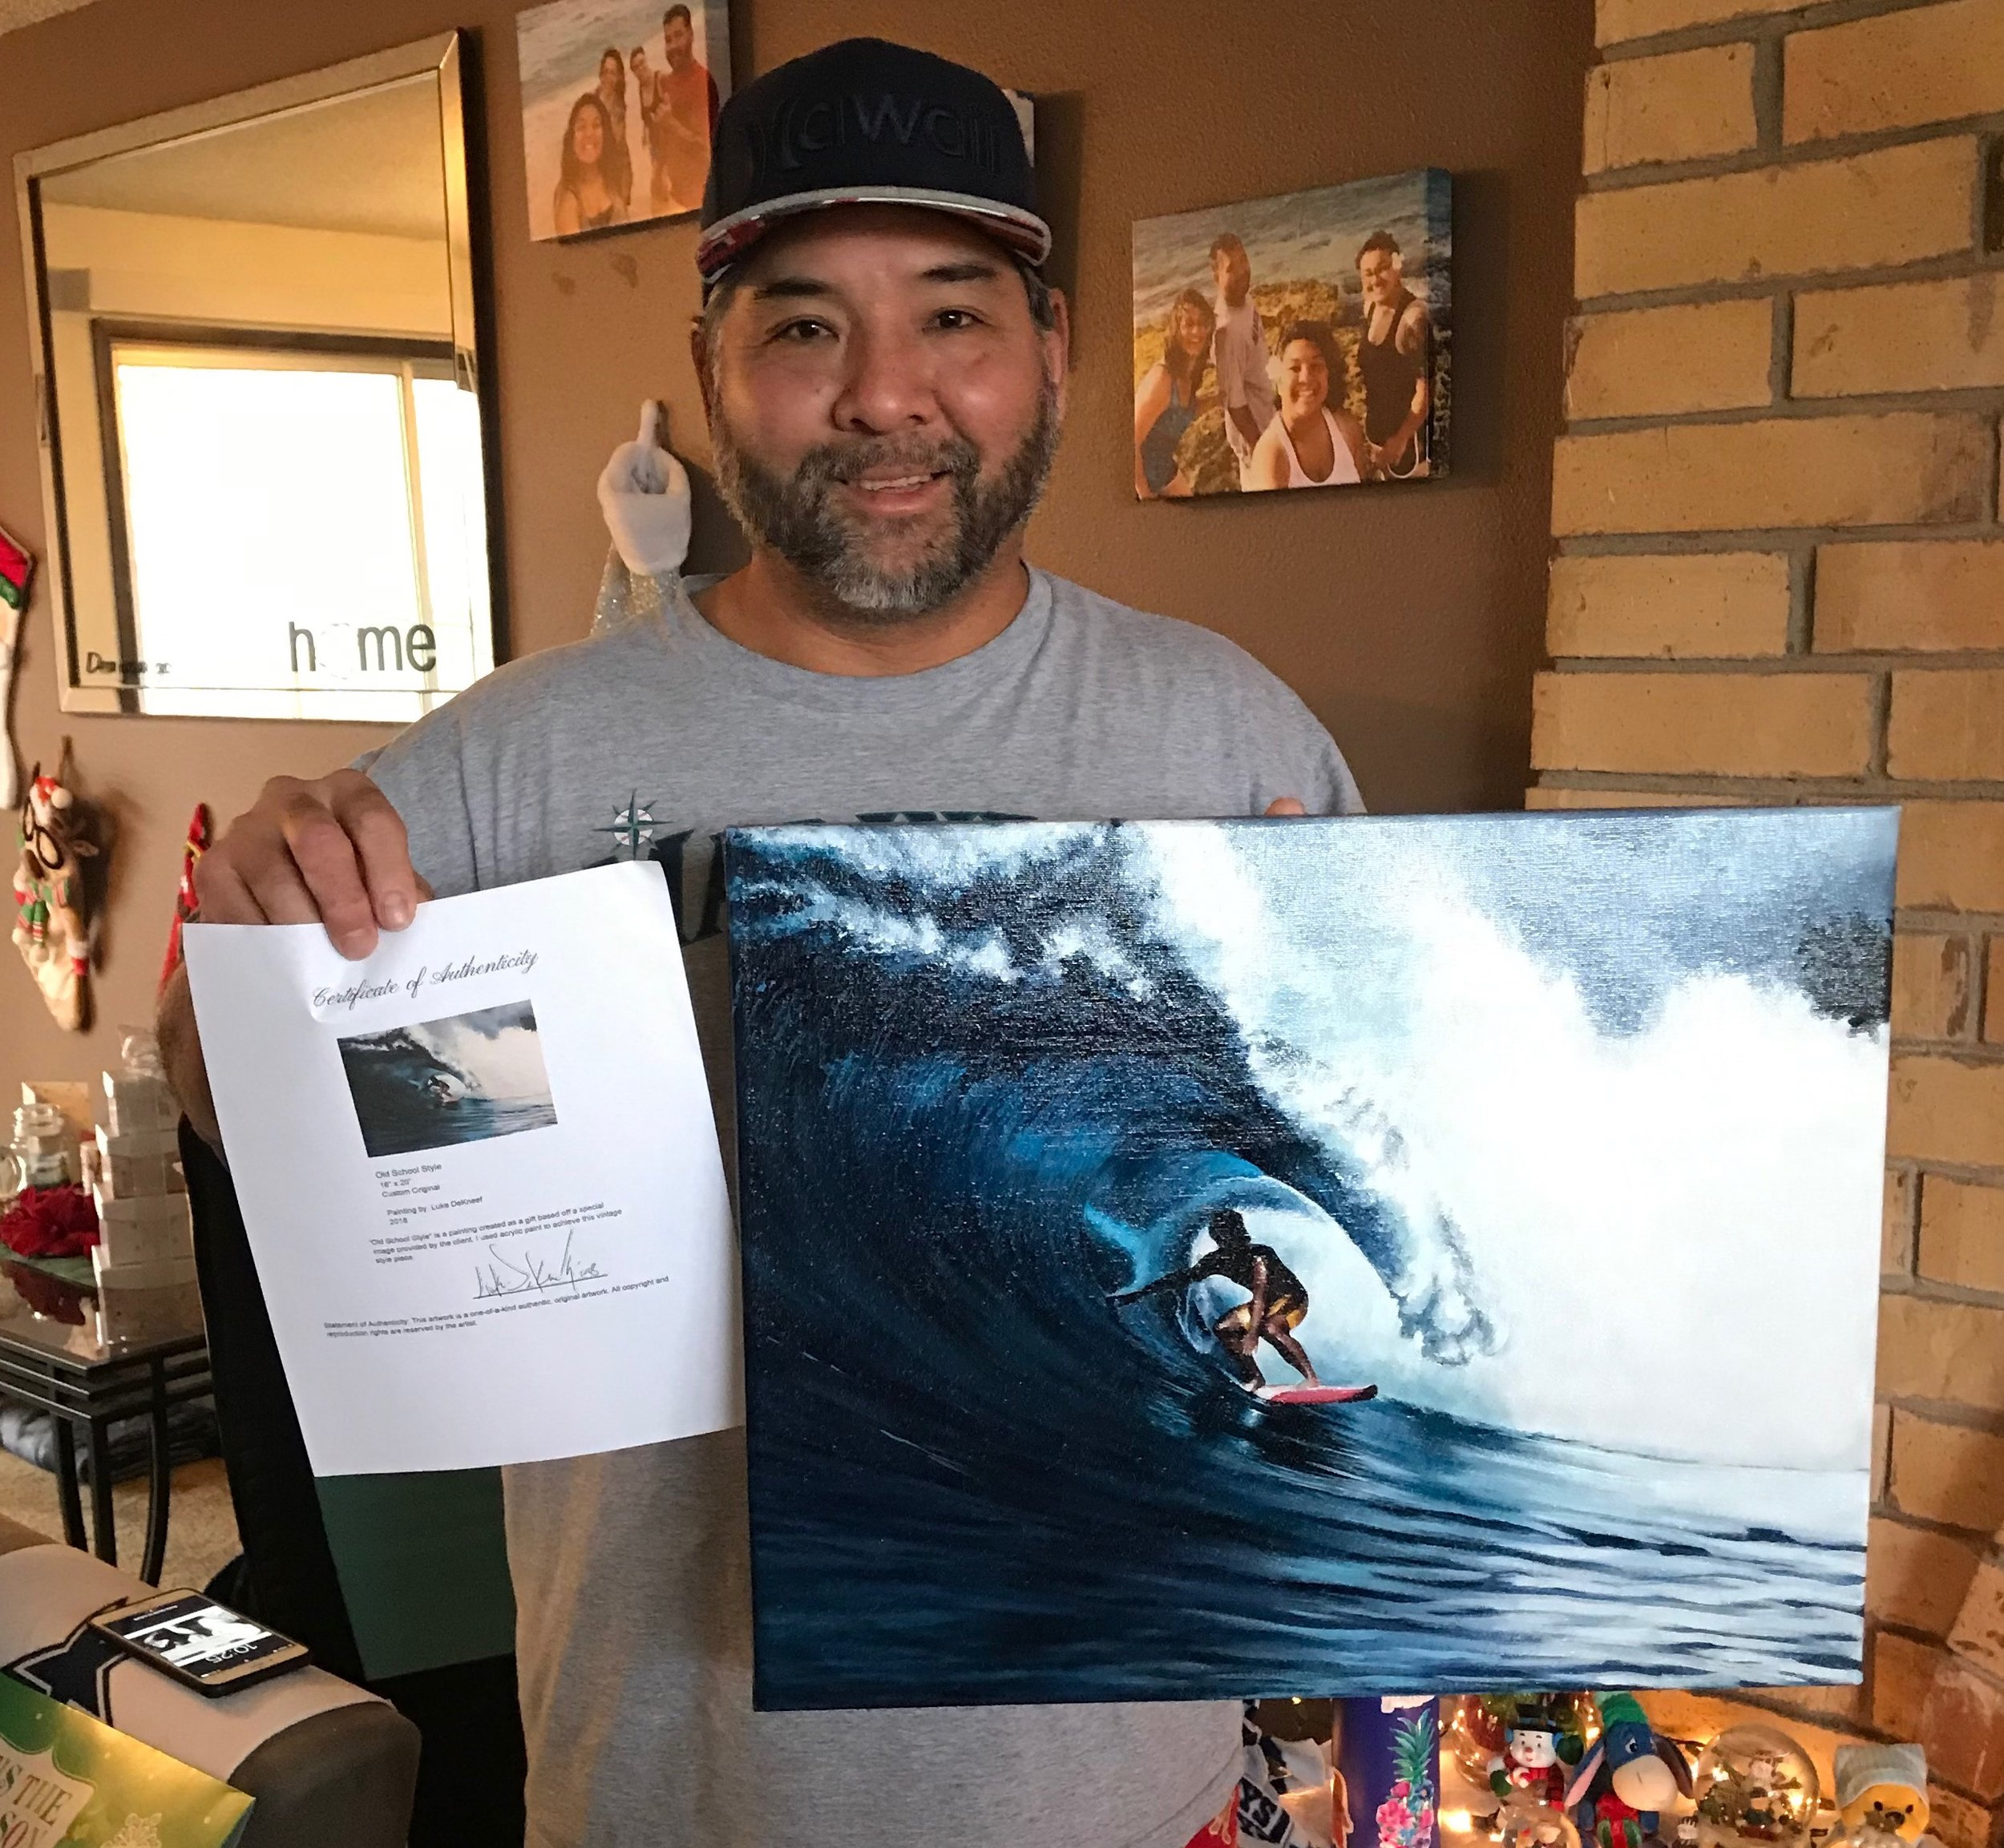 A commissioned piece created in December 2018 as a surprise Christmas gift from daughter Randi for her father. He had an old photo of his favorite surf session that was slowly beginning to fade. The artist recreated his old school photo and brought it back to life.